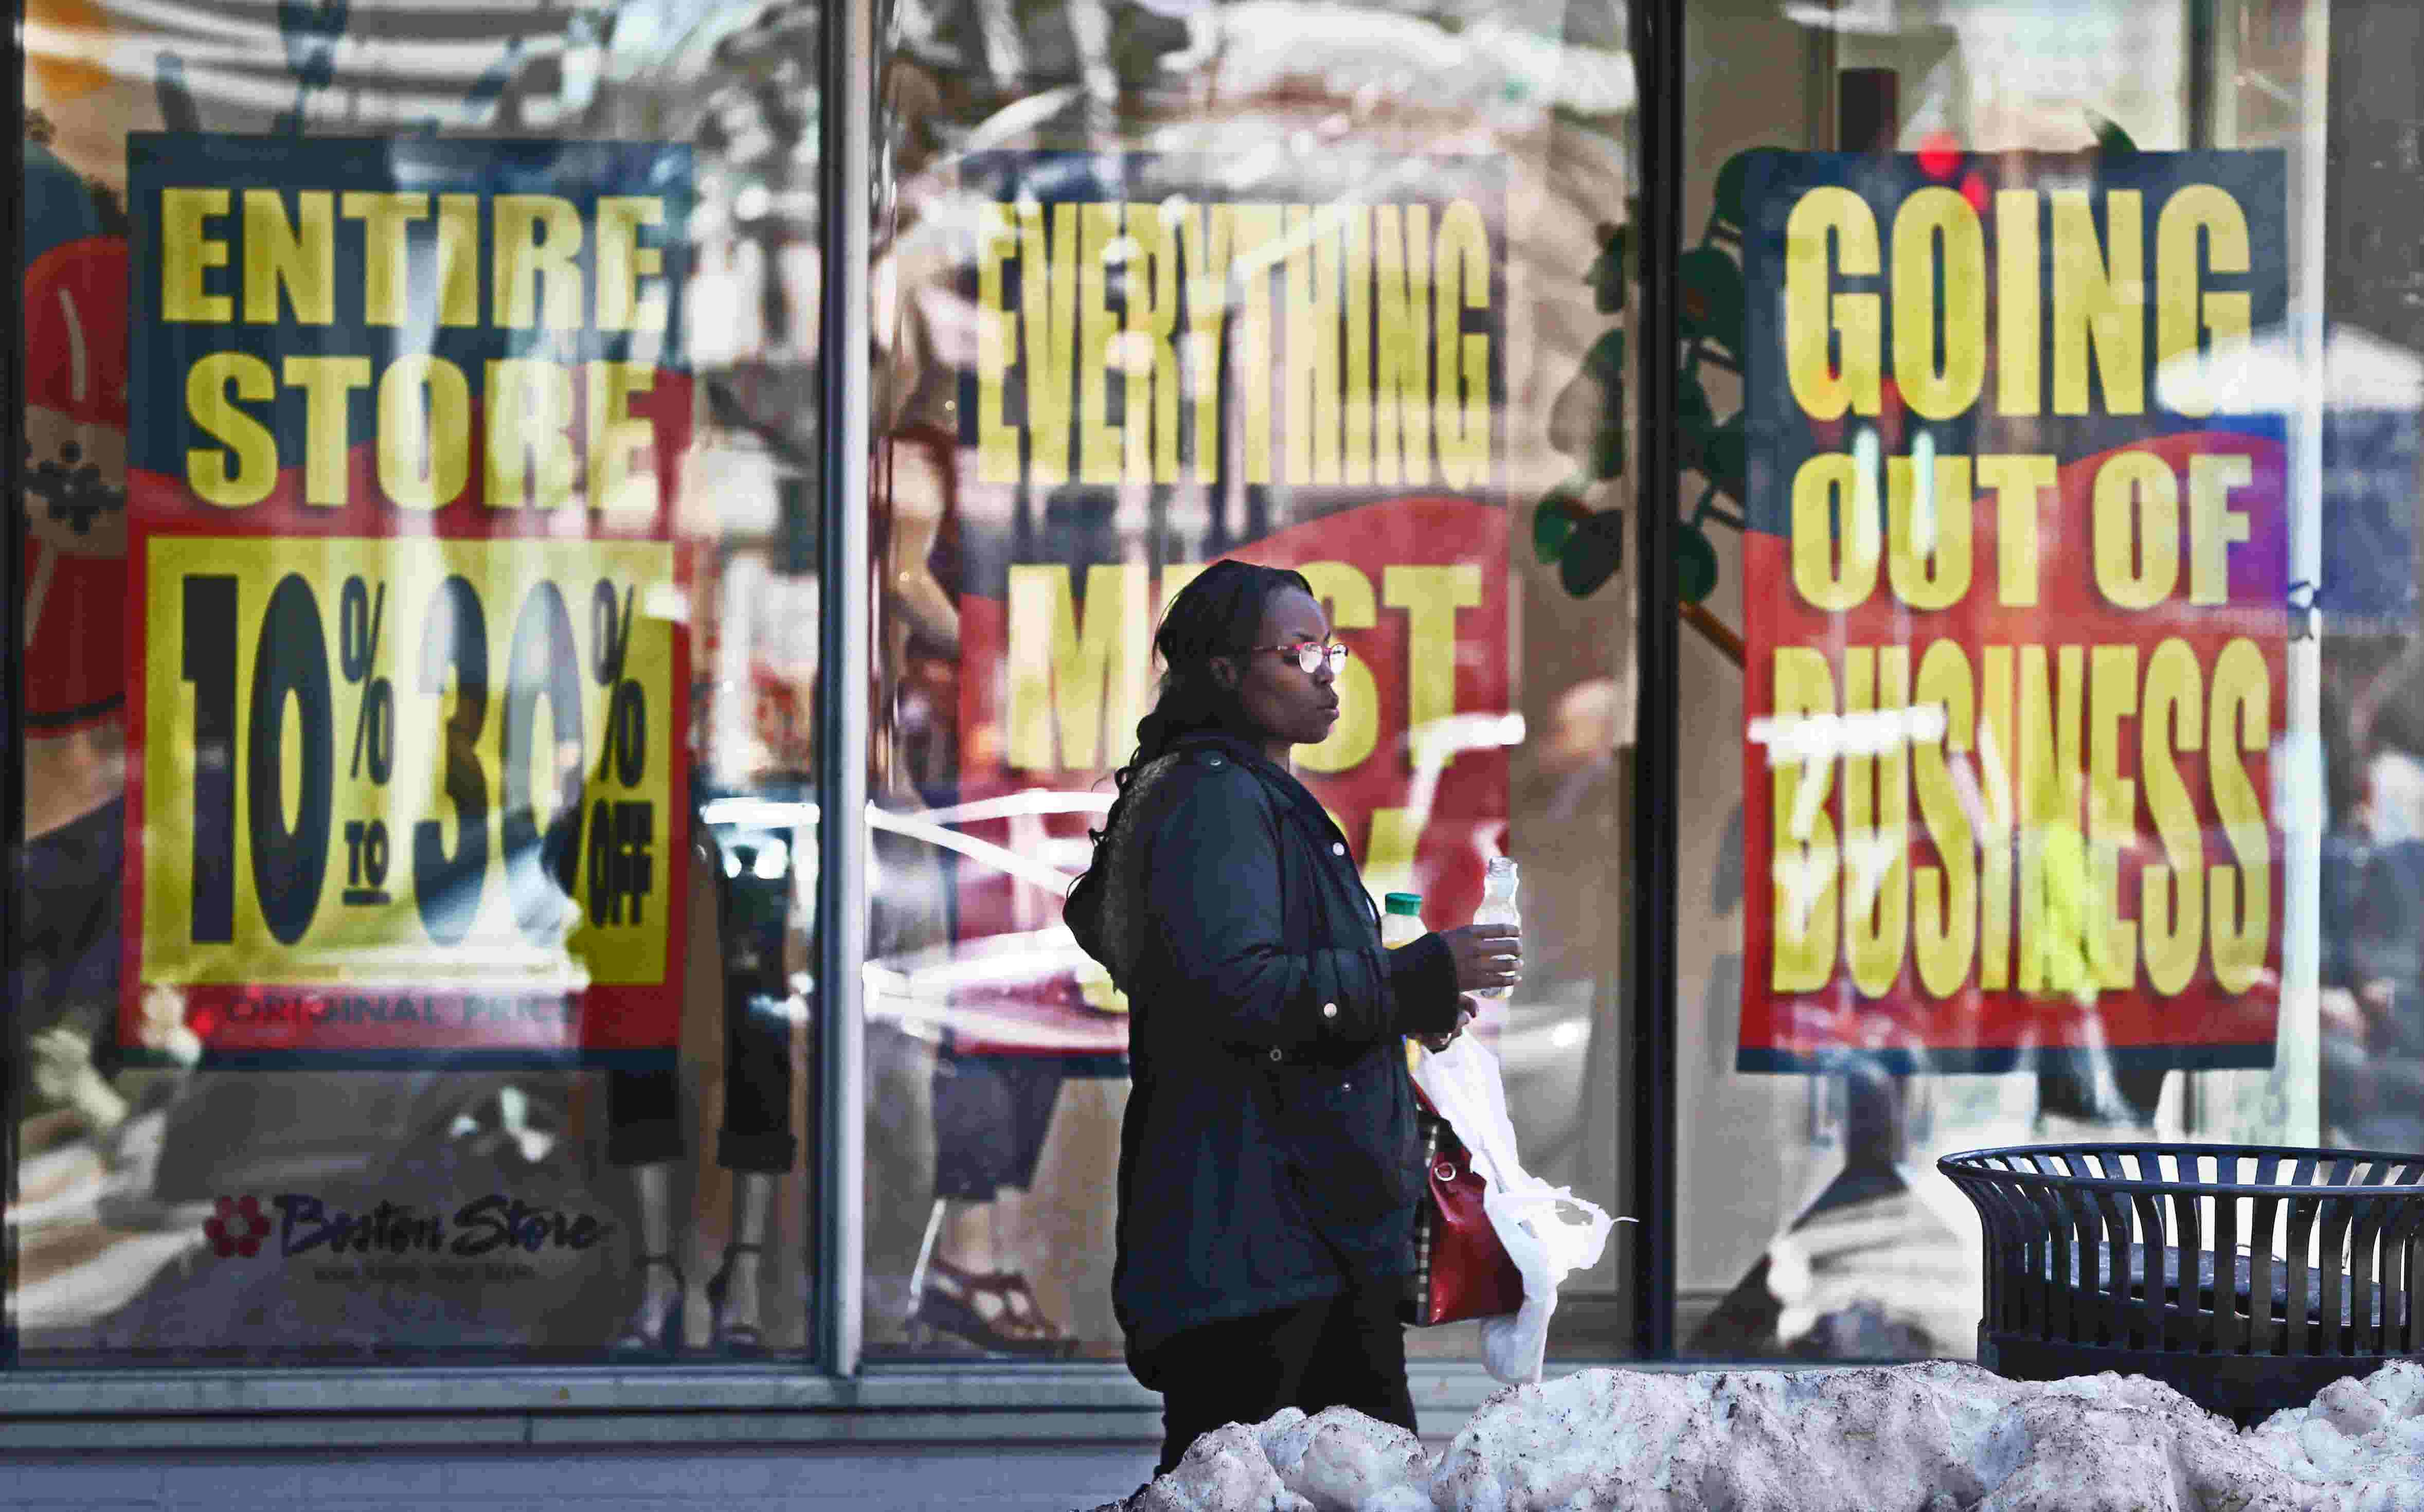 window nation prices as boston store liquidates goingoutofbusiness posters replace window displays at store